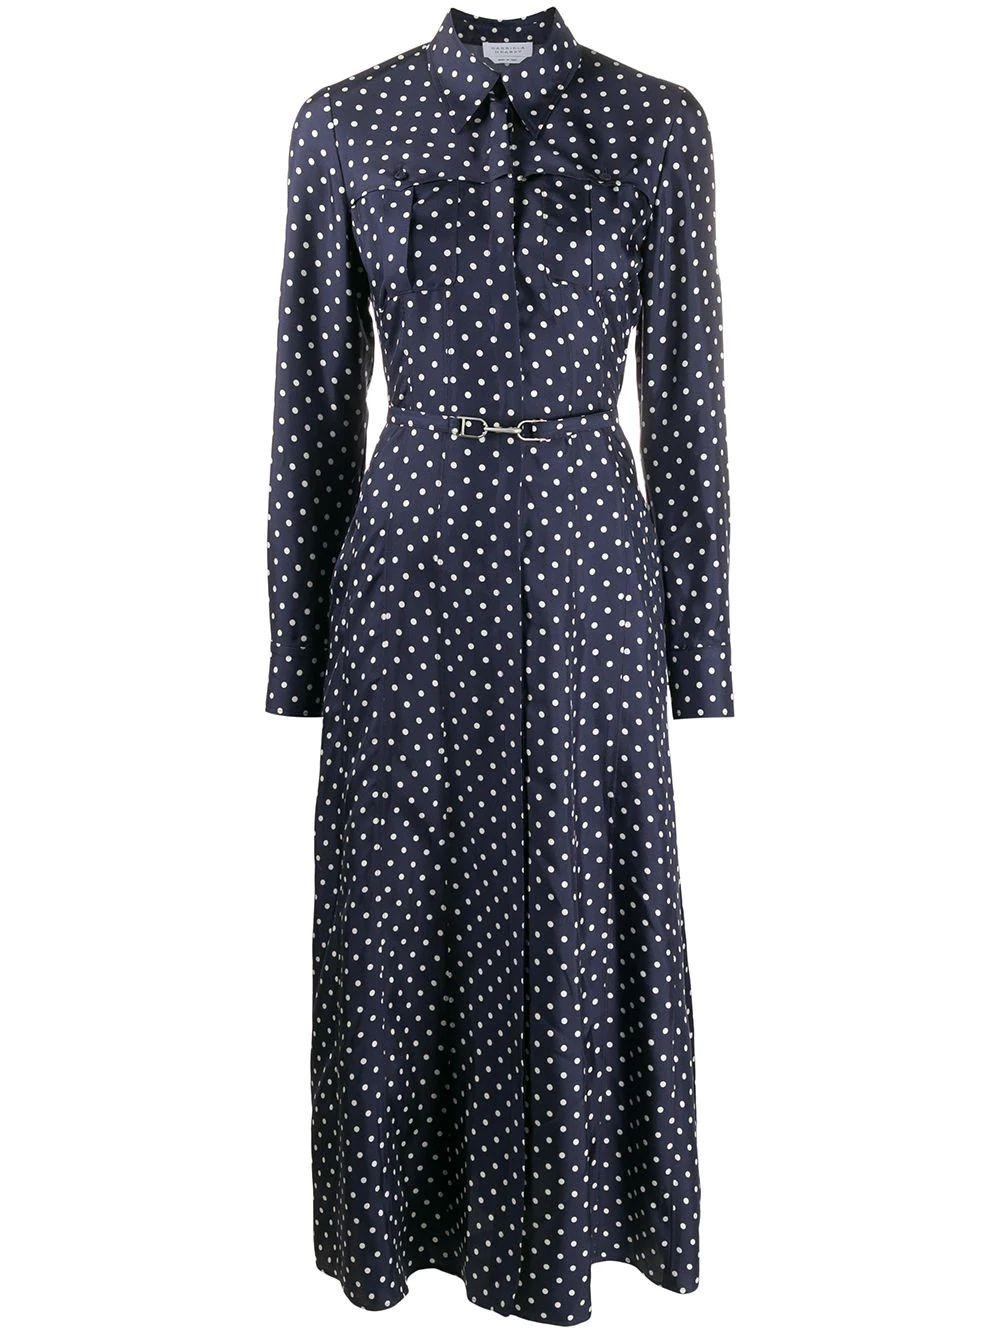 Descartes Patchpocket Polka Dot Dress